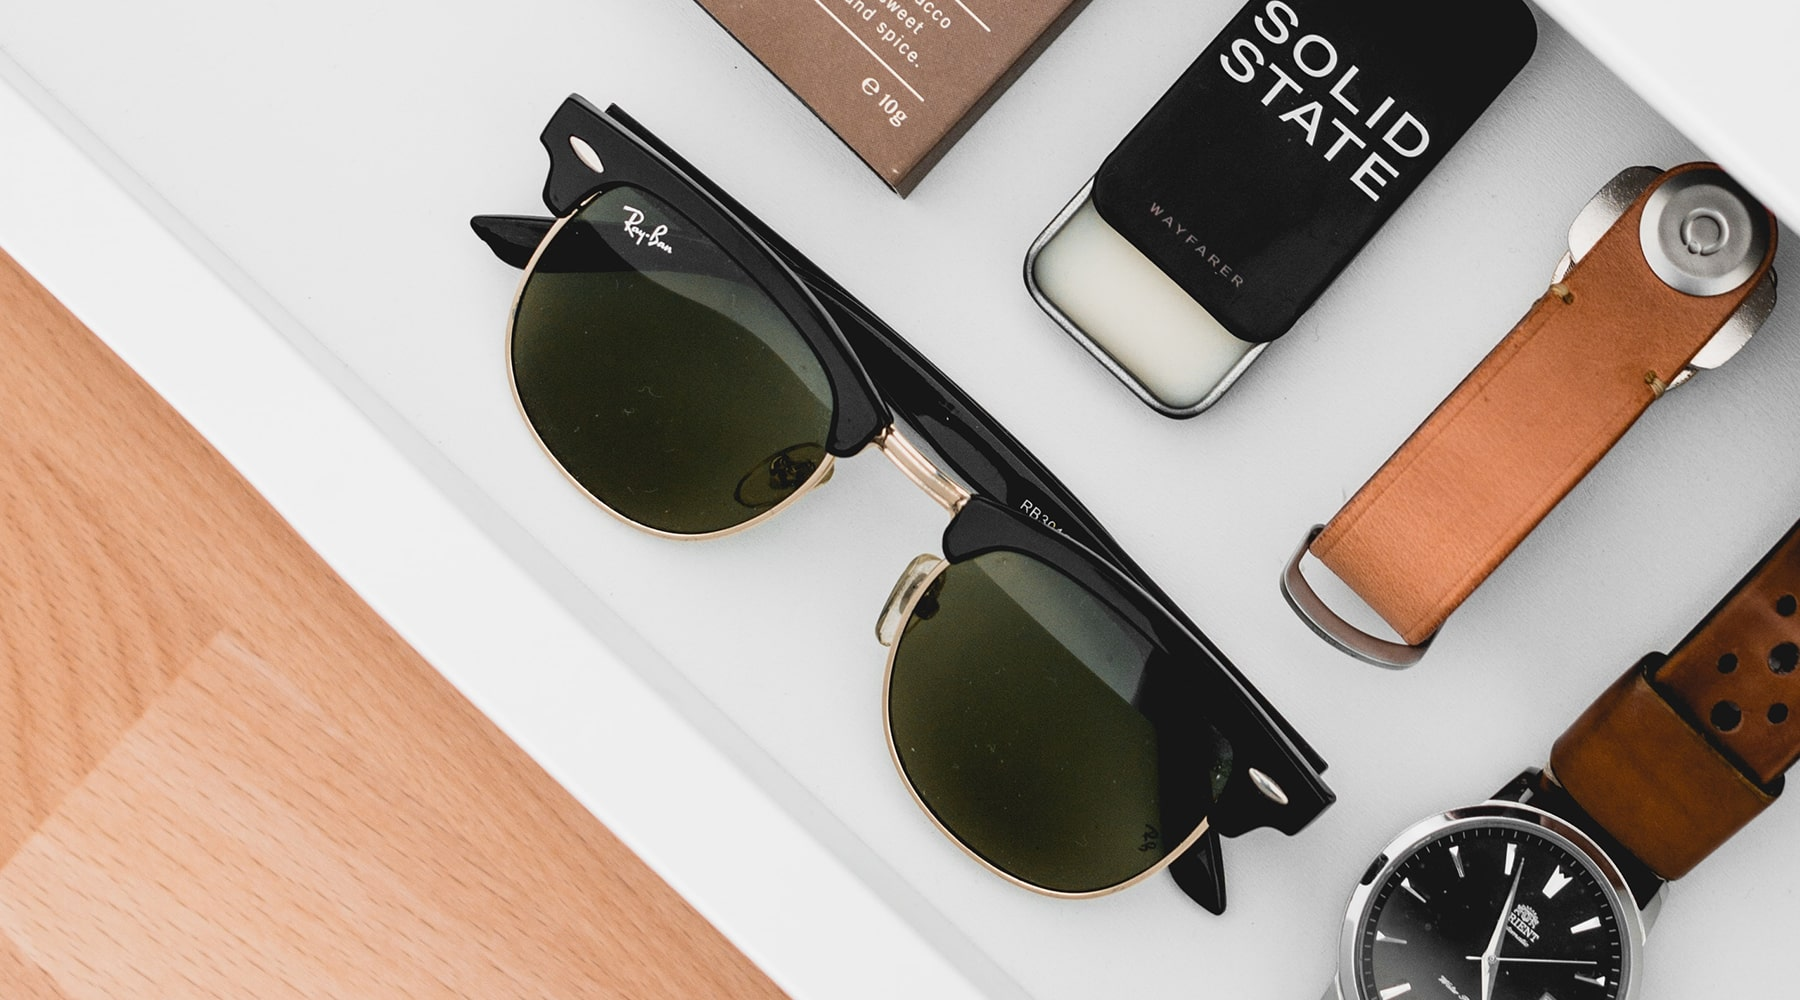 sunglass-flatlay-with-accessories